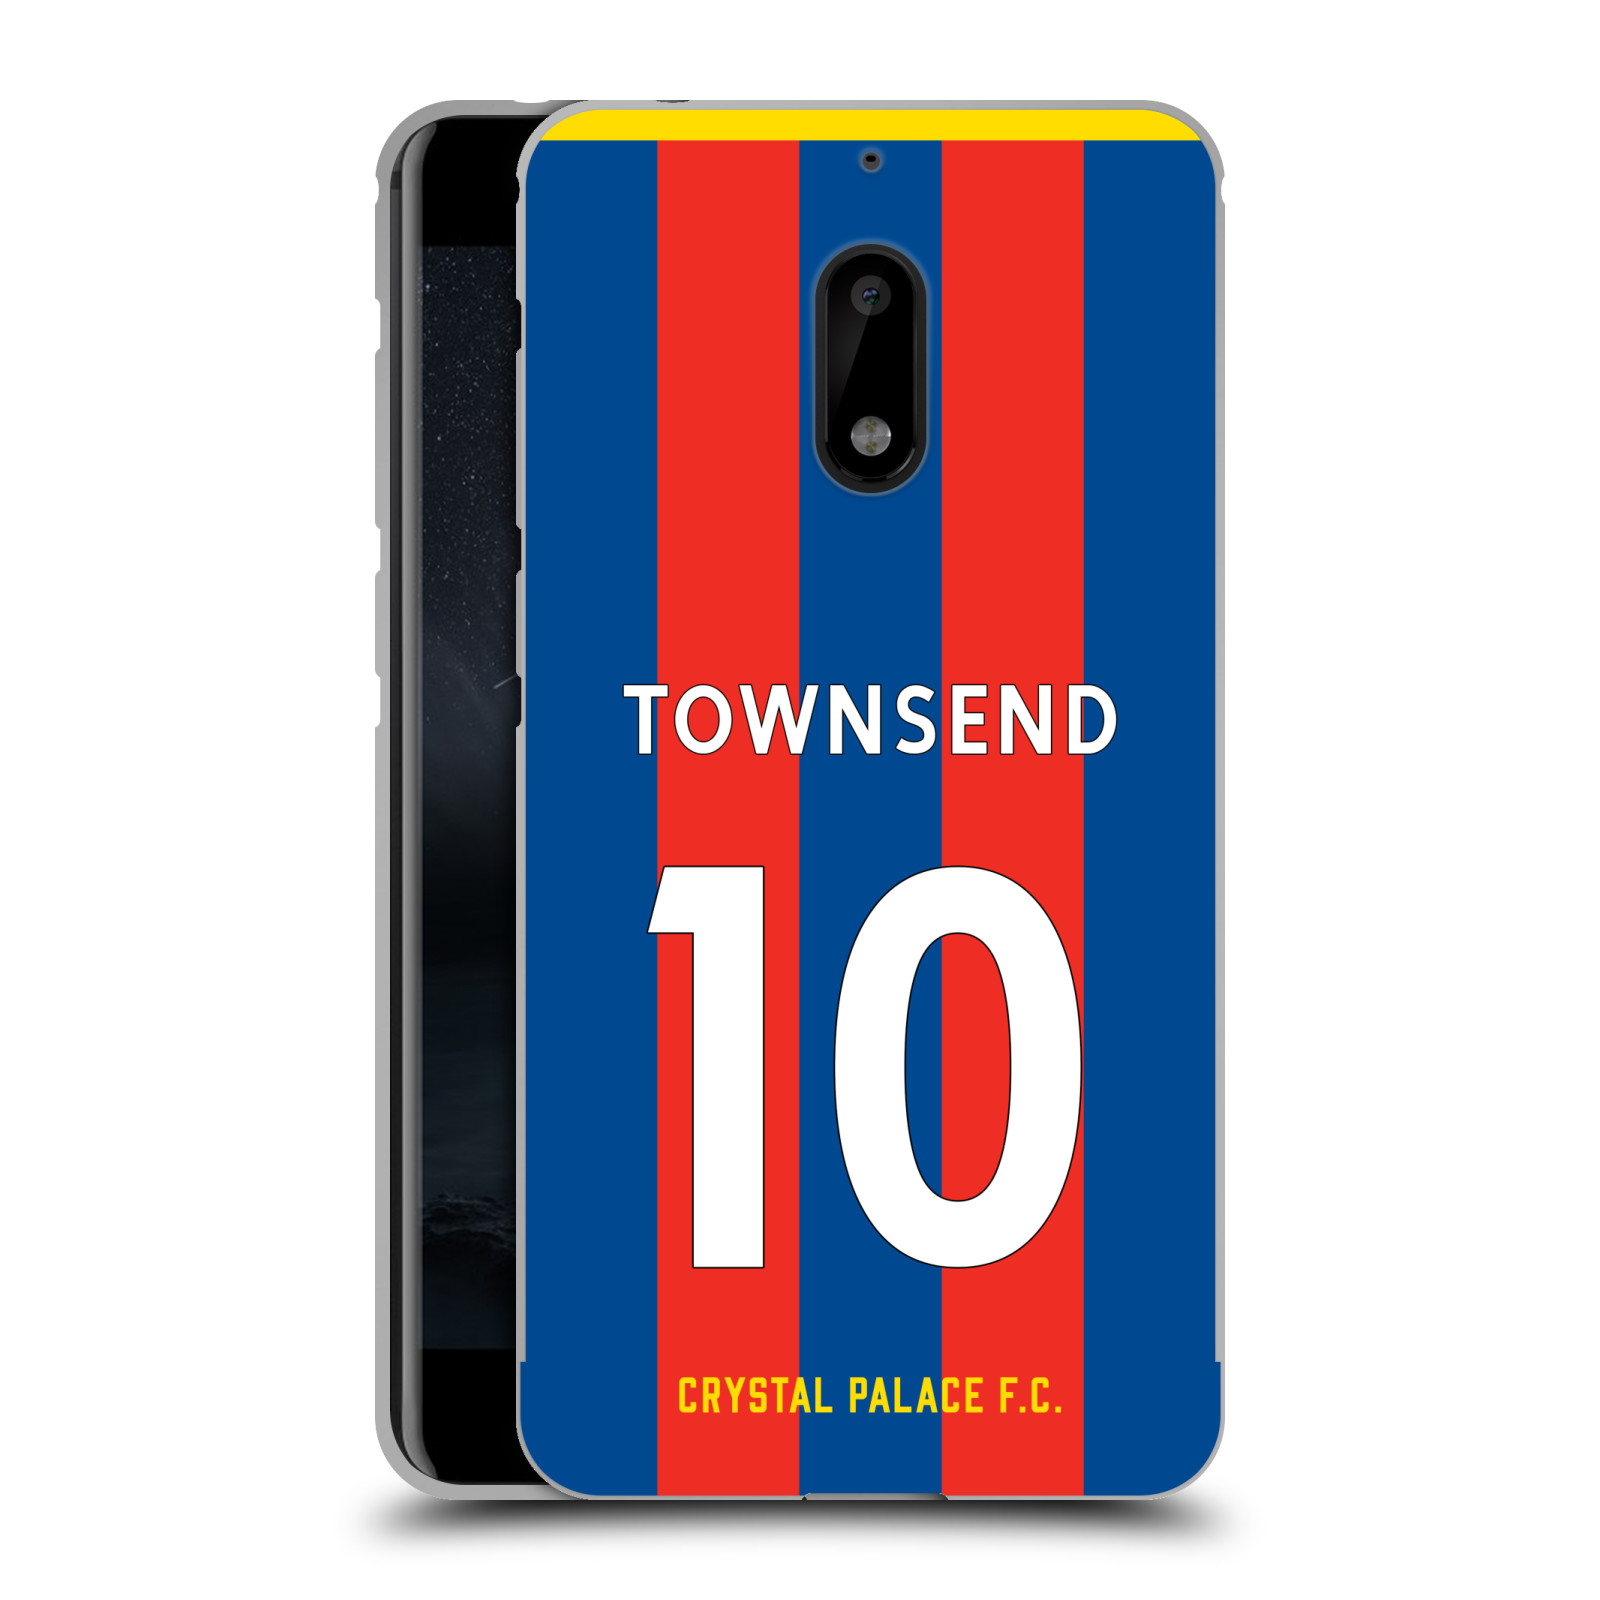 CRYSTAL-PALACE-FC-2017-18-HOME-KIT-1-BLACK-METALLIC-ALUMINIUM-FOR-NOKIA-PHONES